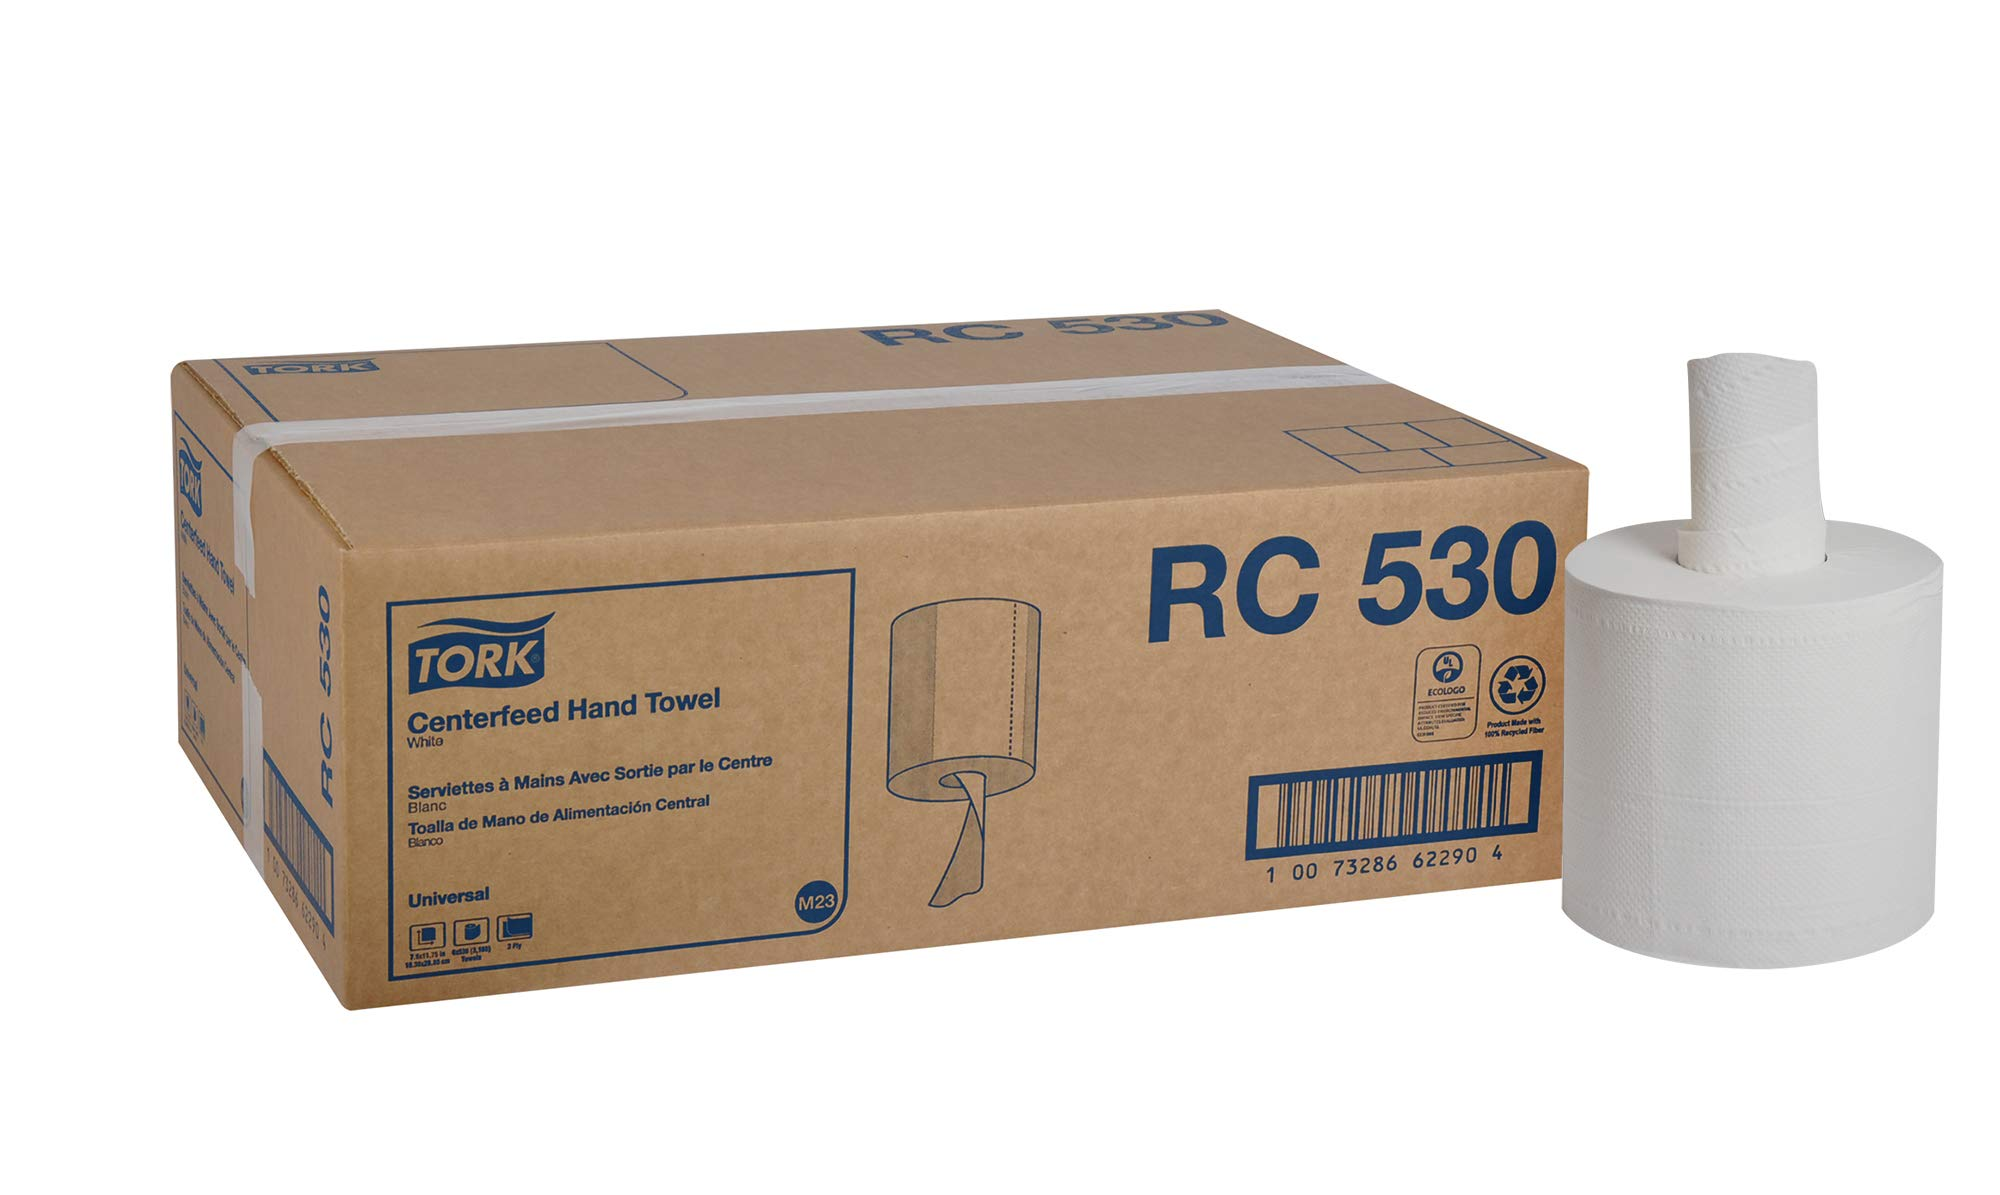 Tork Universal RC530 Centerfeed Paper Hand Towel Roll, 2-Ply, 7.6'' Width x 11.75'' Length, White (Case of 6 Rolls, 530 per Roll, 3,180 Towels)